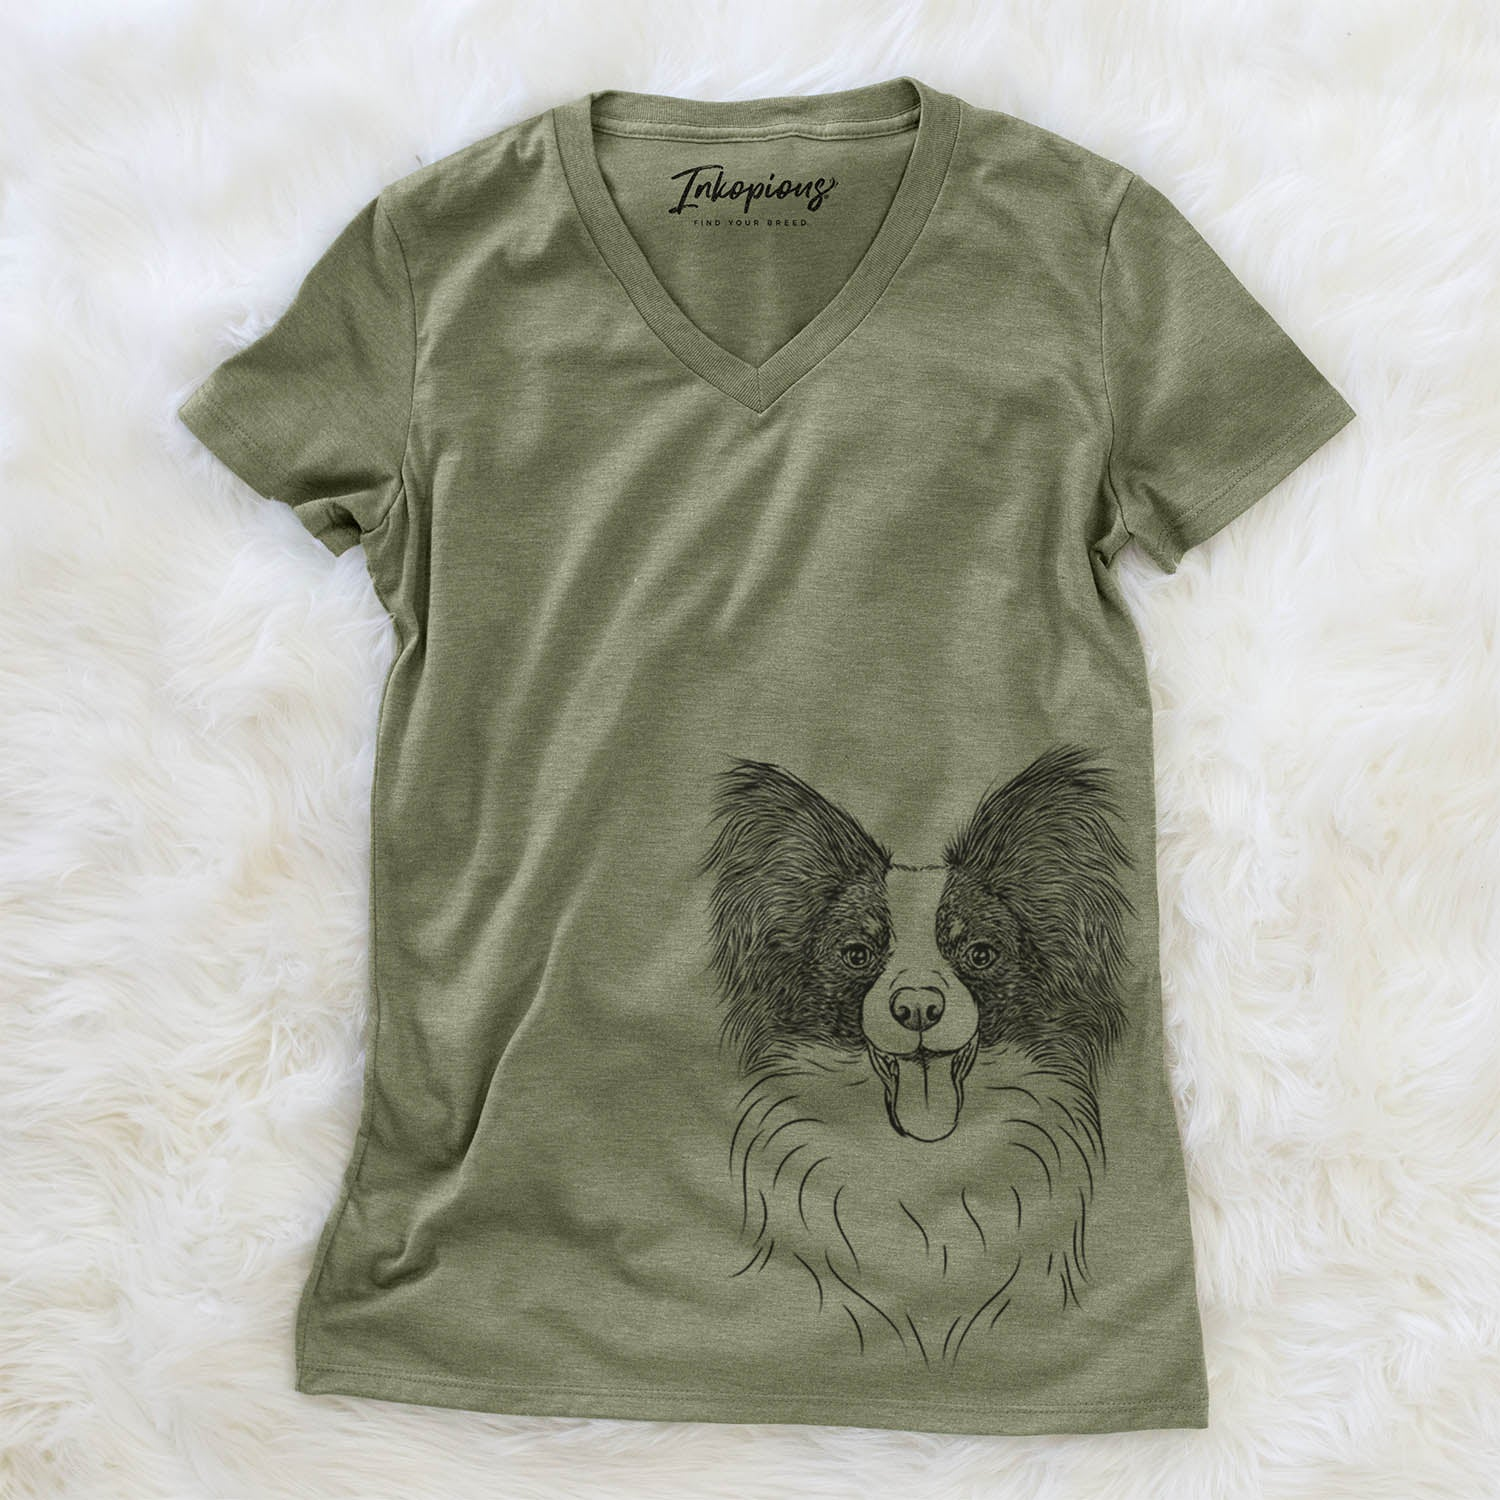 Patrick the Papillon - Women's Modern Fit V-neck Shirt